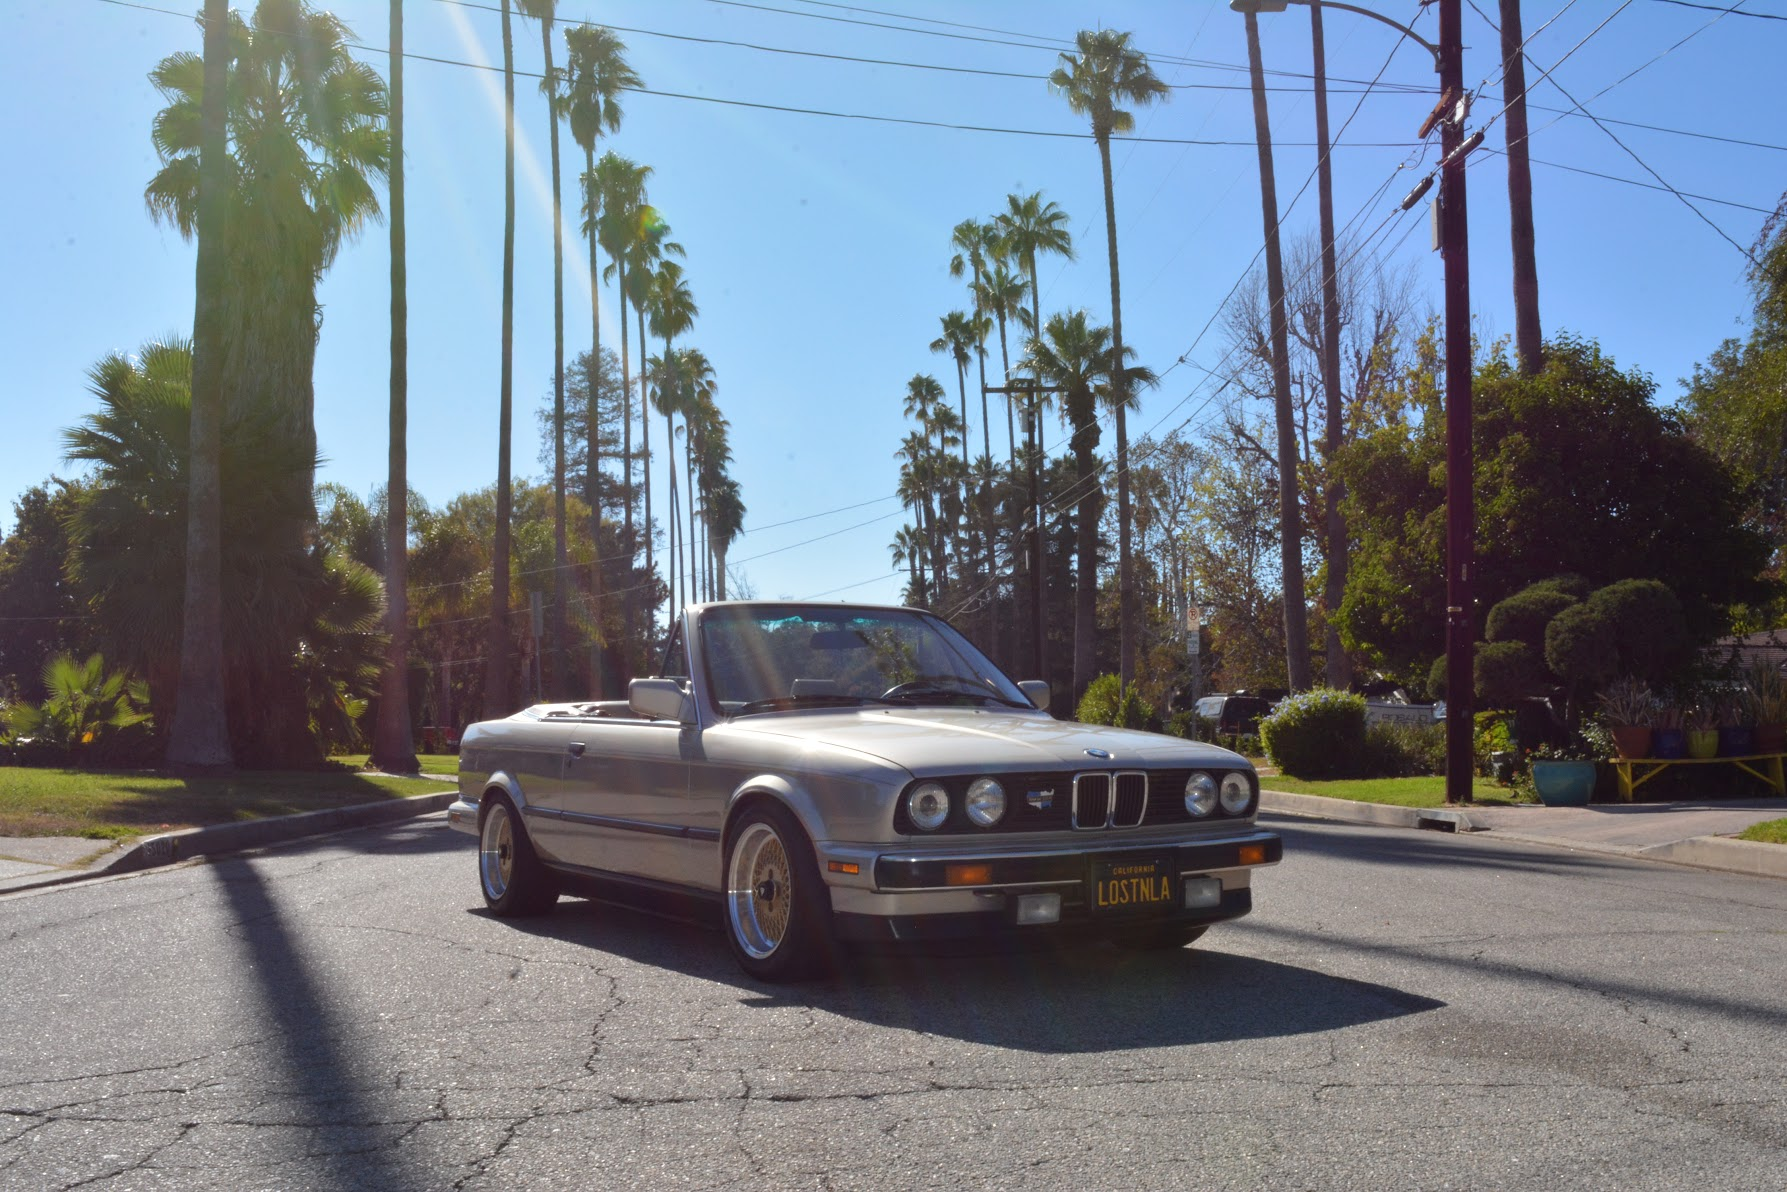 1988 BMW 325i Cabriolet in rare Benzitbeige-metallic with heated sport  seats matted to a 5 speed manual transmission with 3.73 limited slip  differential.